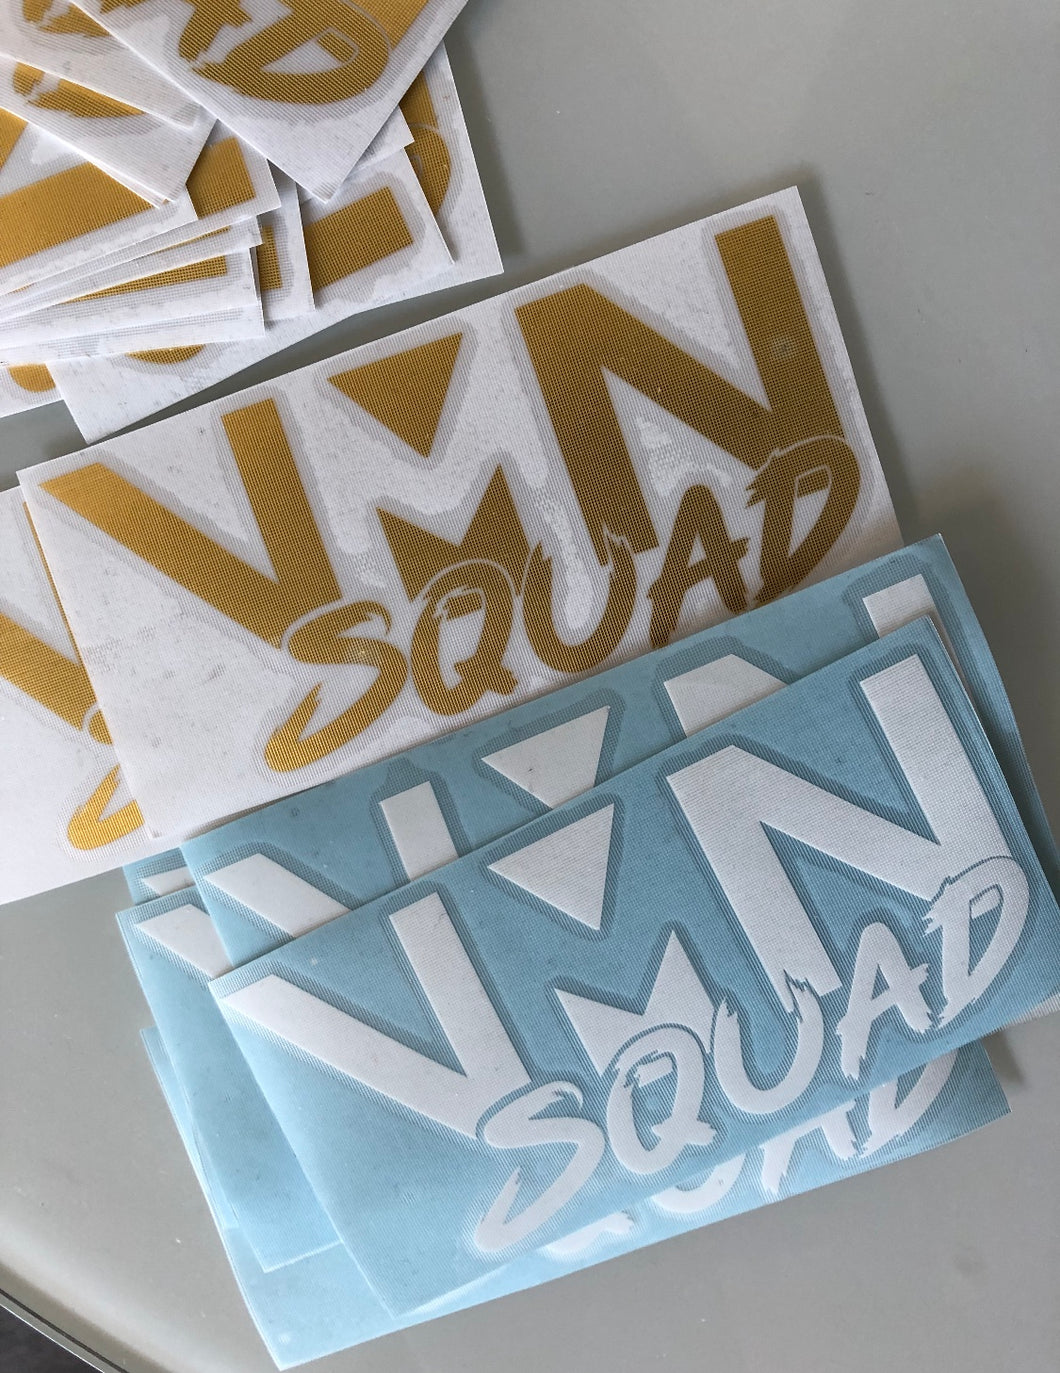 VMN SQUAD DECAL STICKER